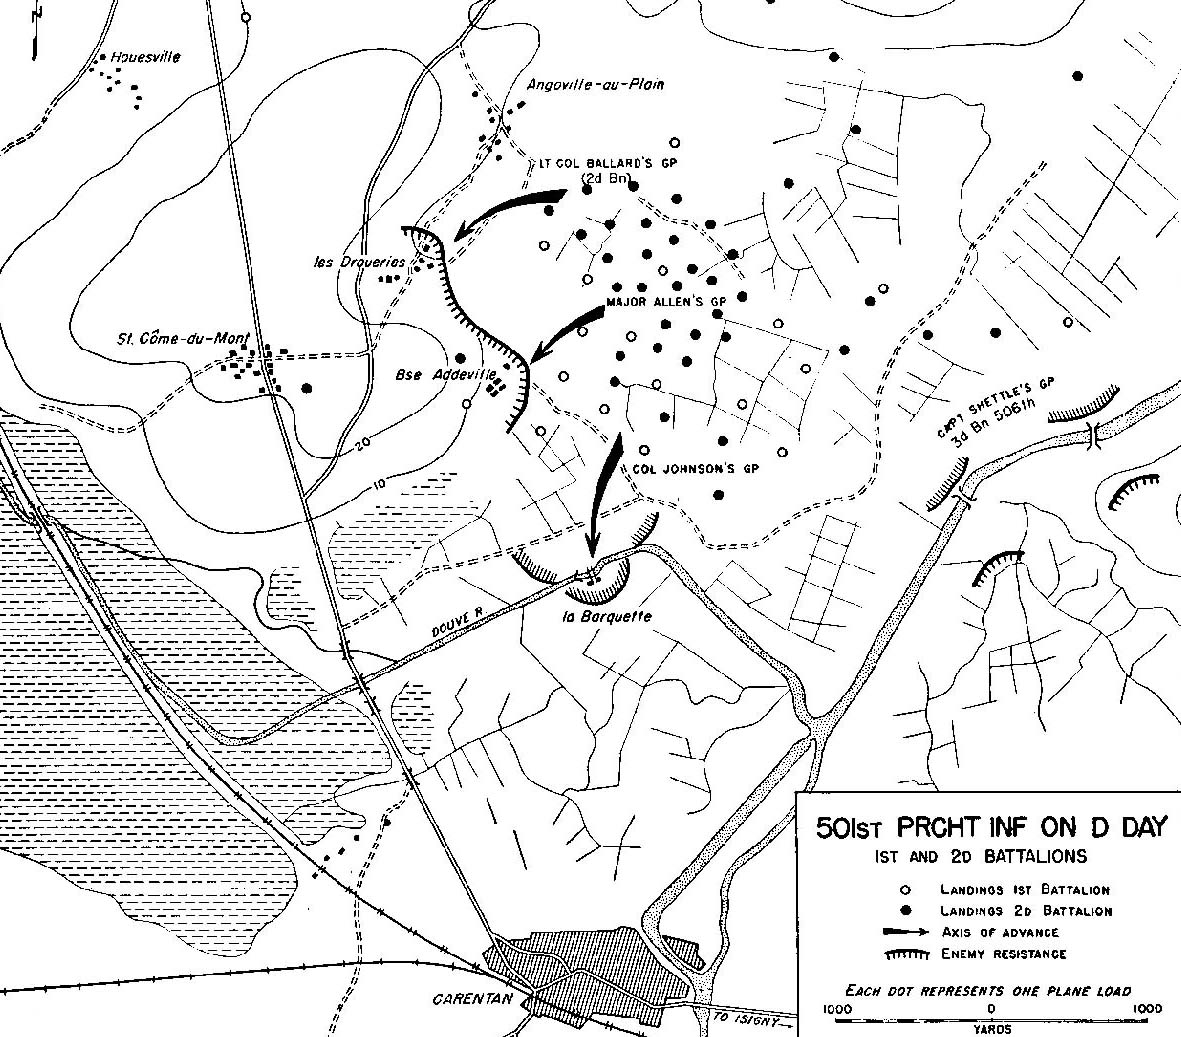 501st parachute infantry on d day 1st and 2d battalions